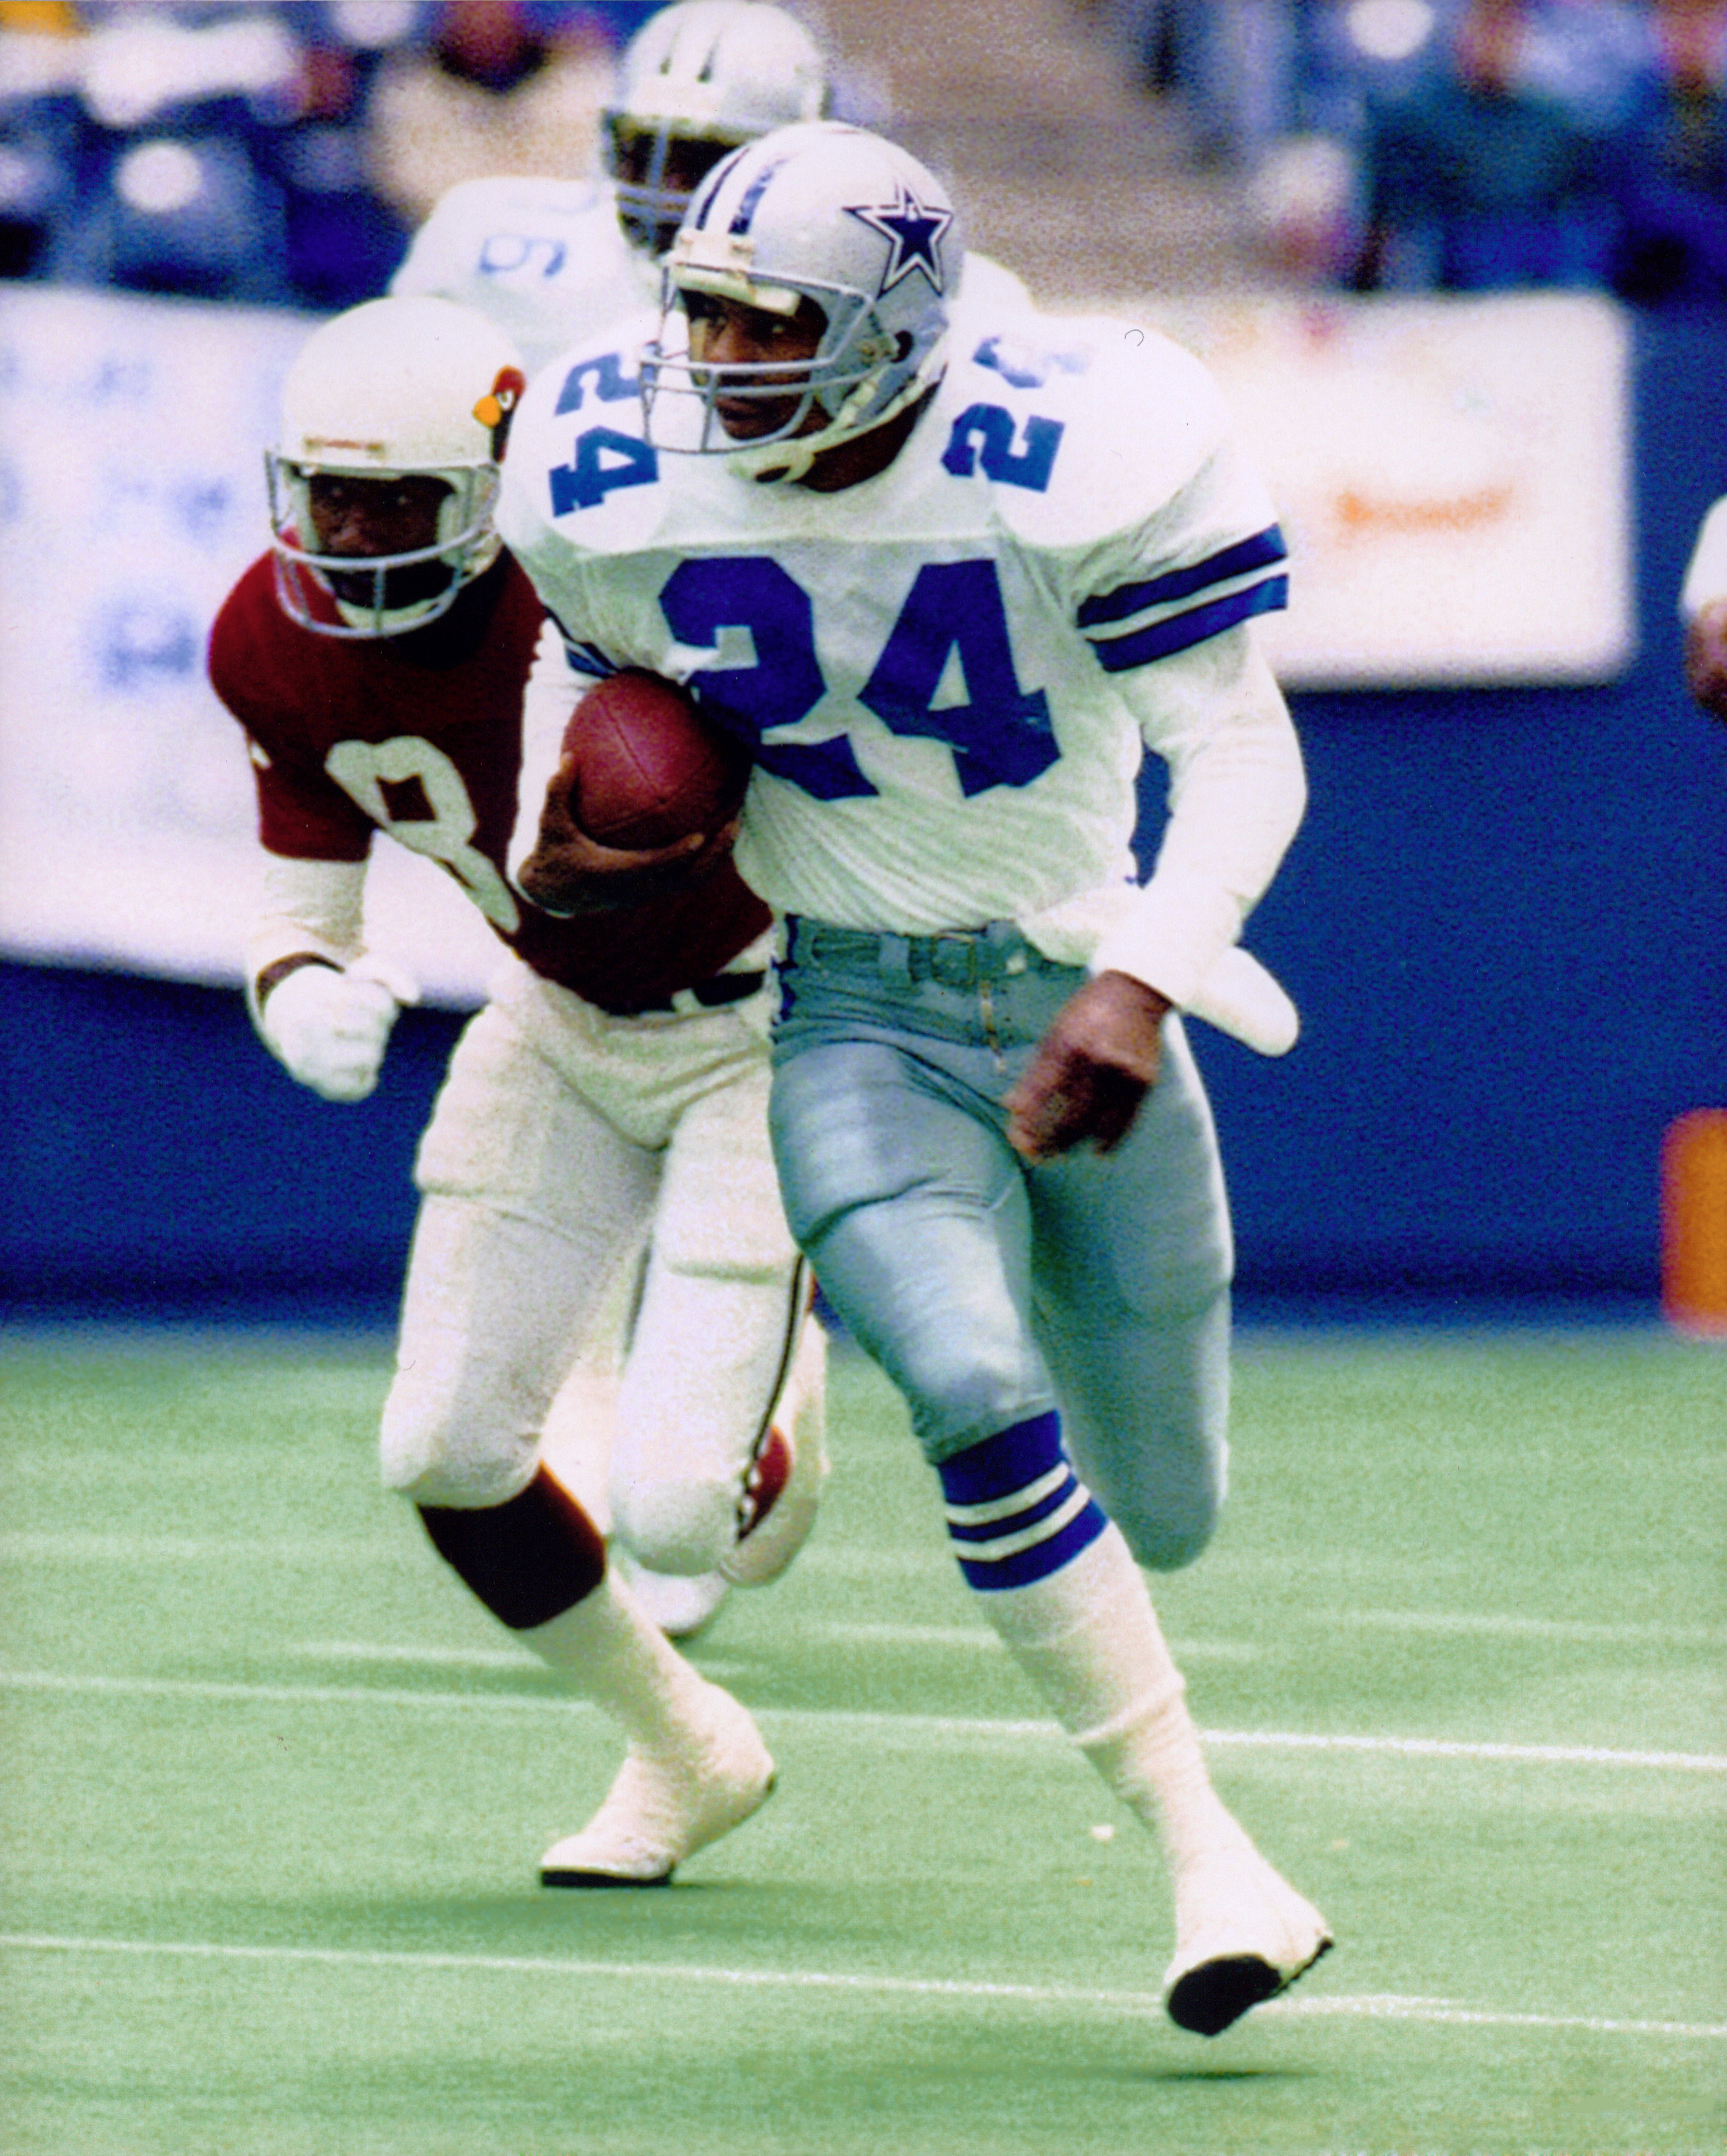 Cowboys Draft - Beyond the Clock: Undrafted Wonder, Everson Walls